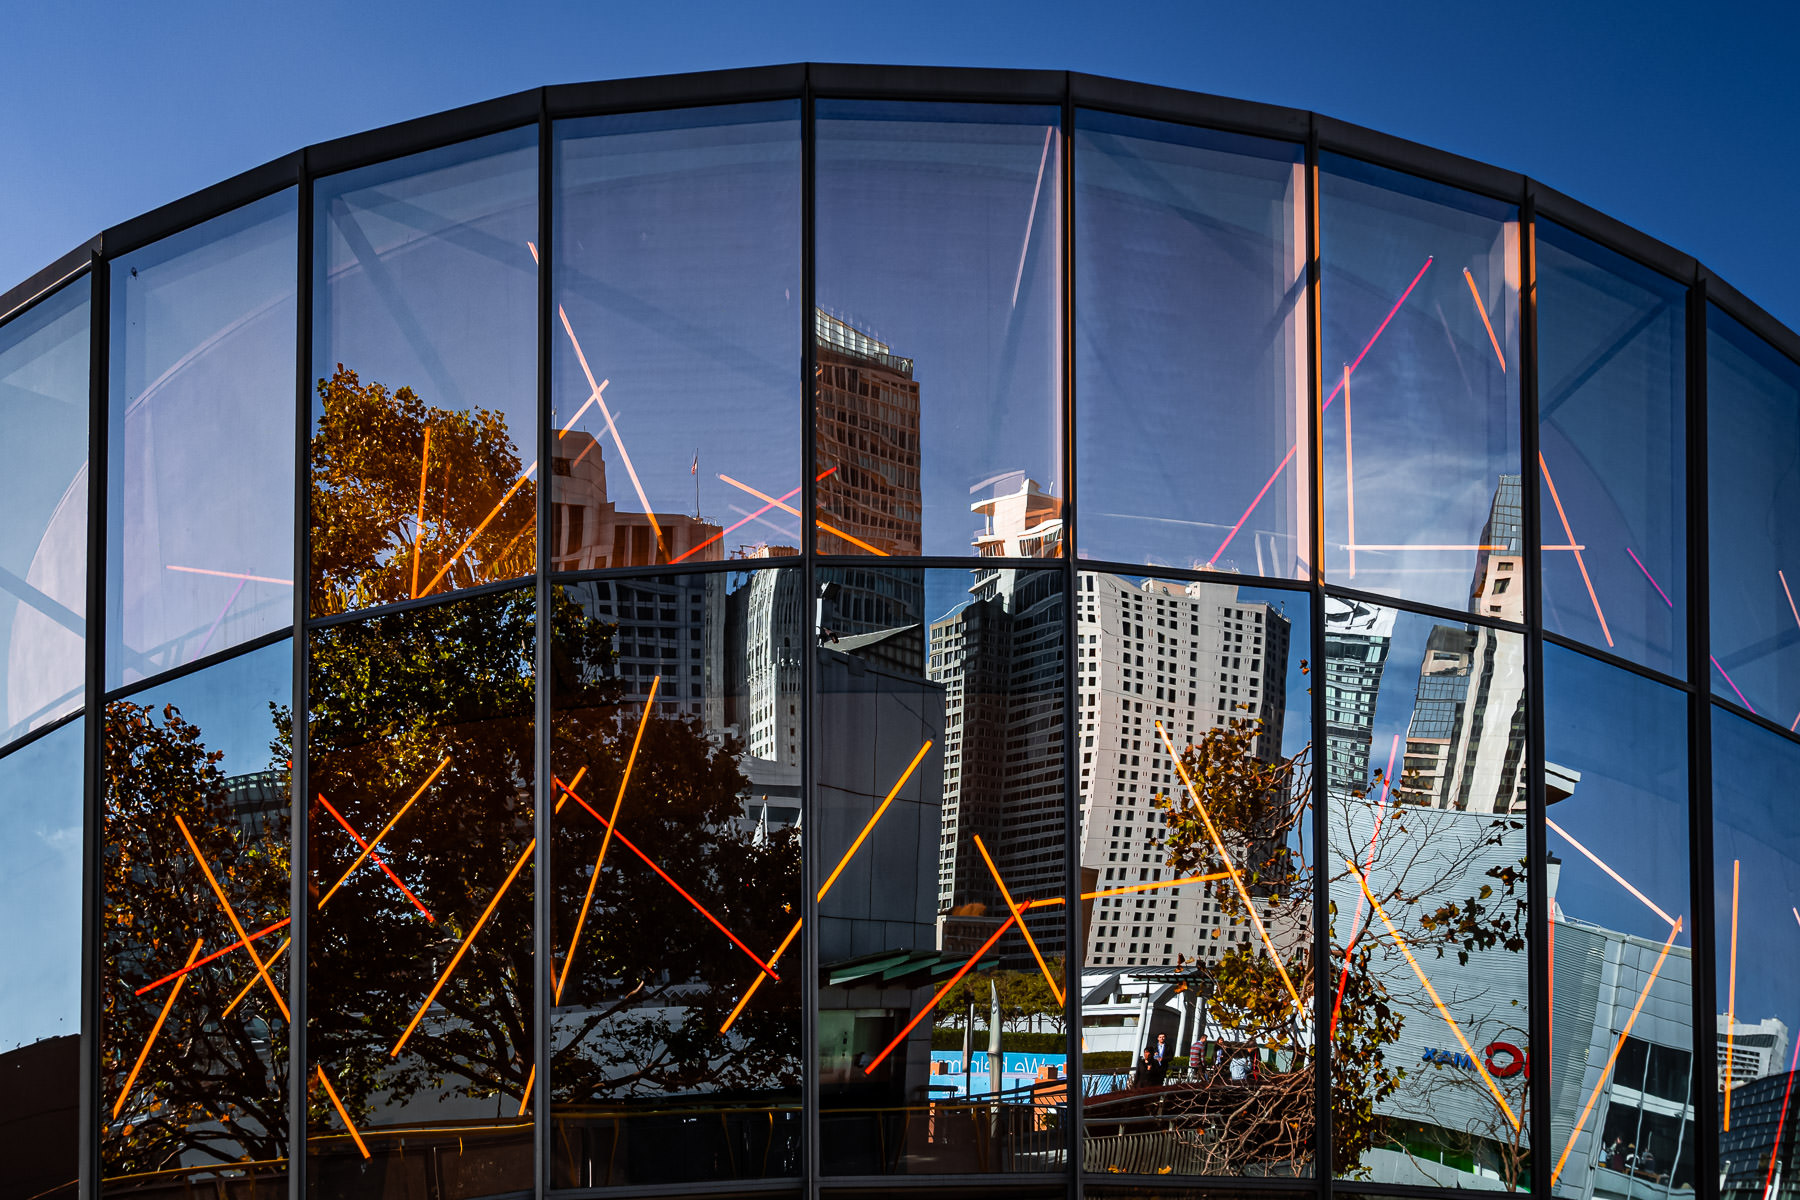 Skyscrapers are reflected in the glass façade of San Francisco's Children's Creativity Museum.